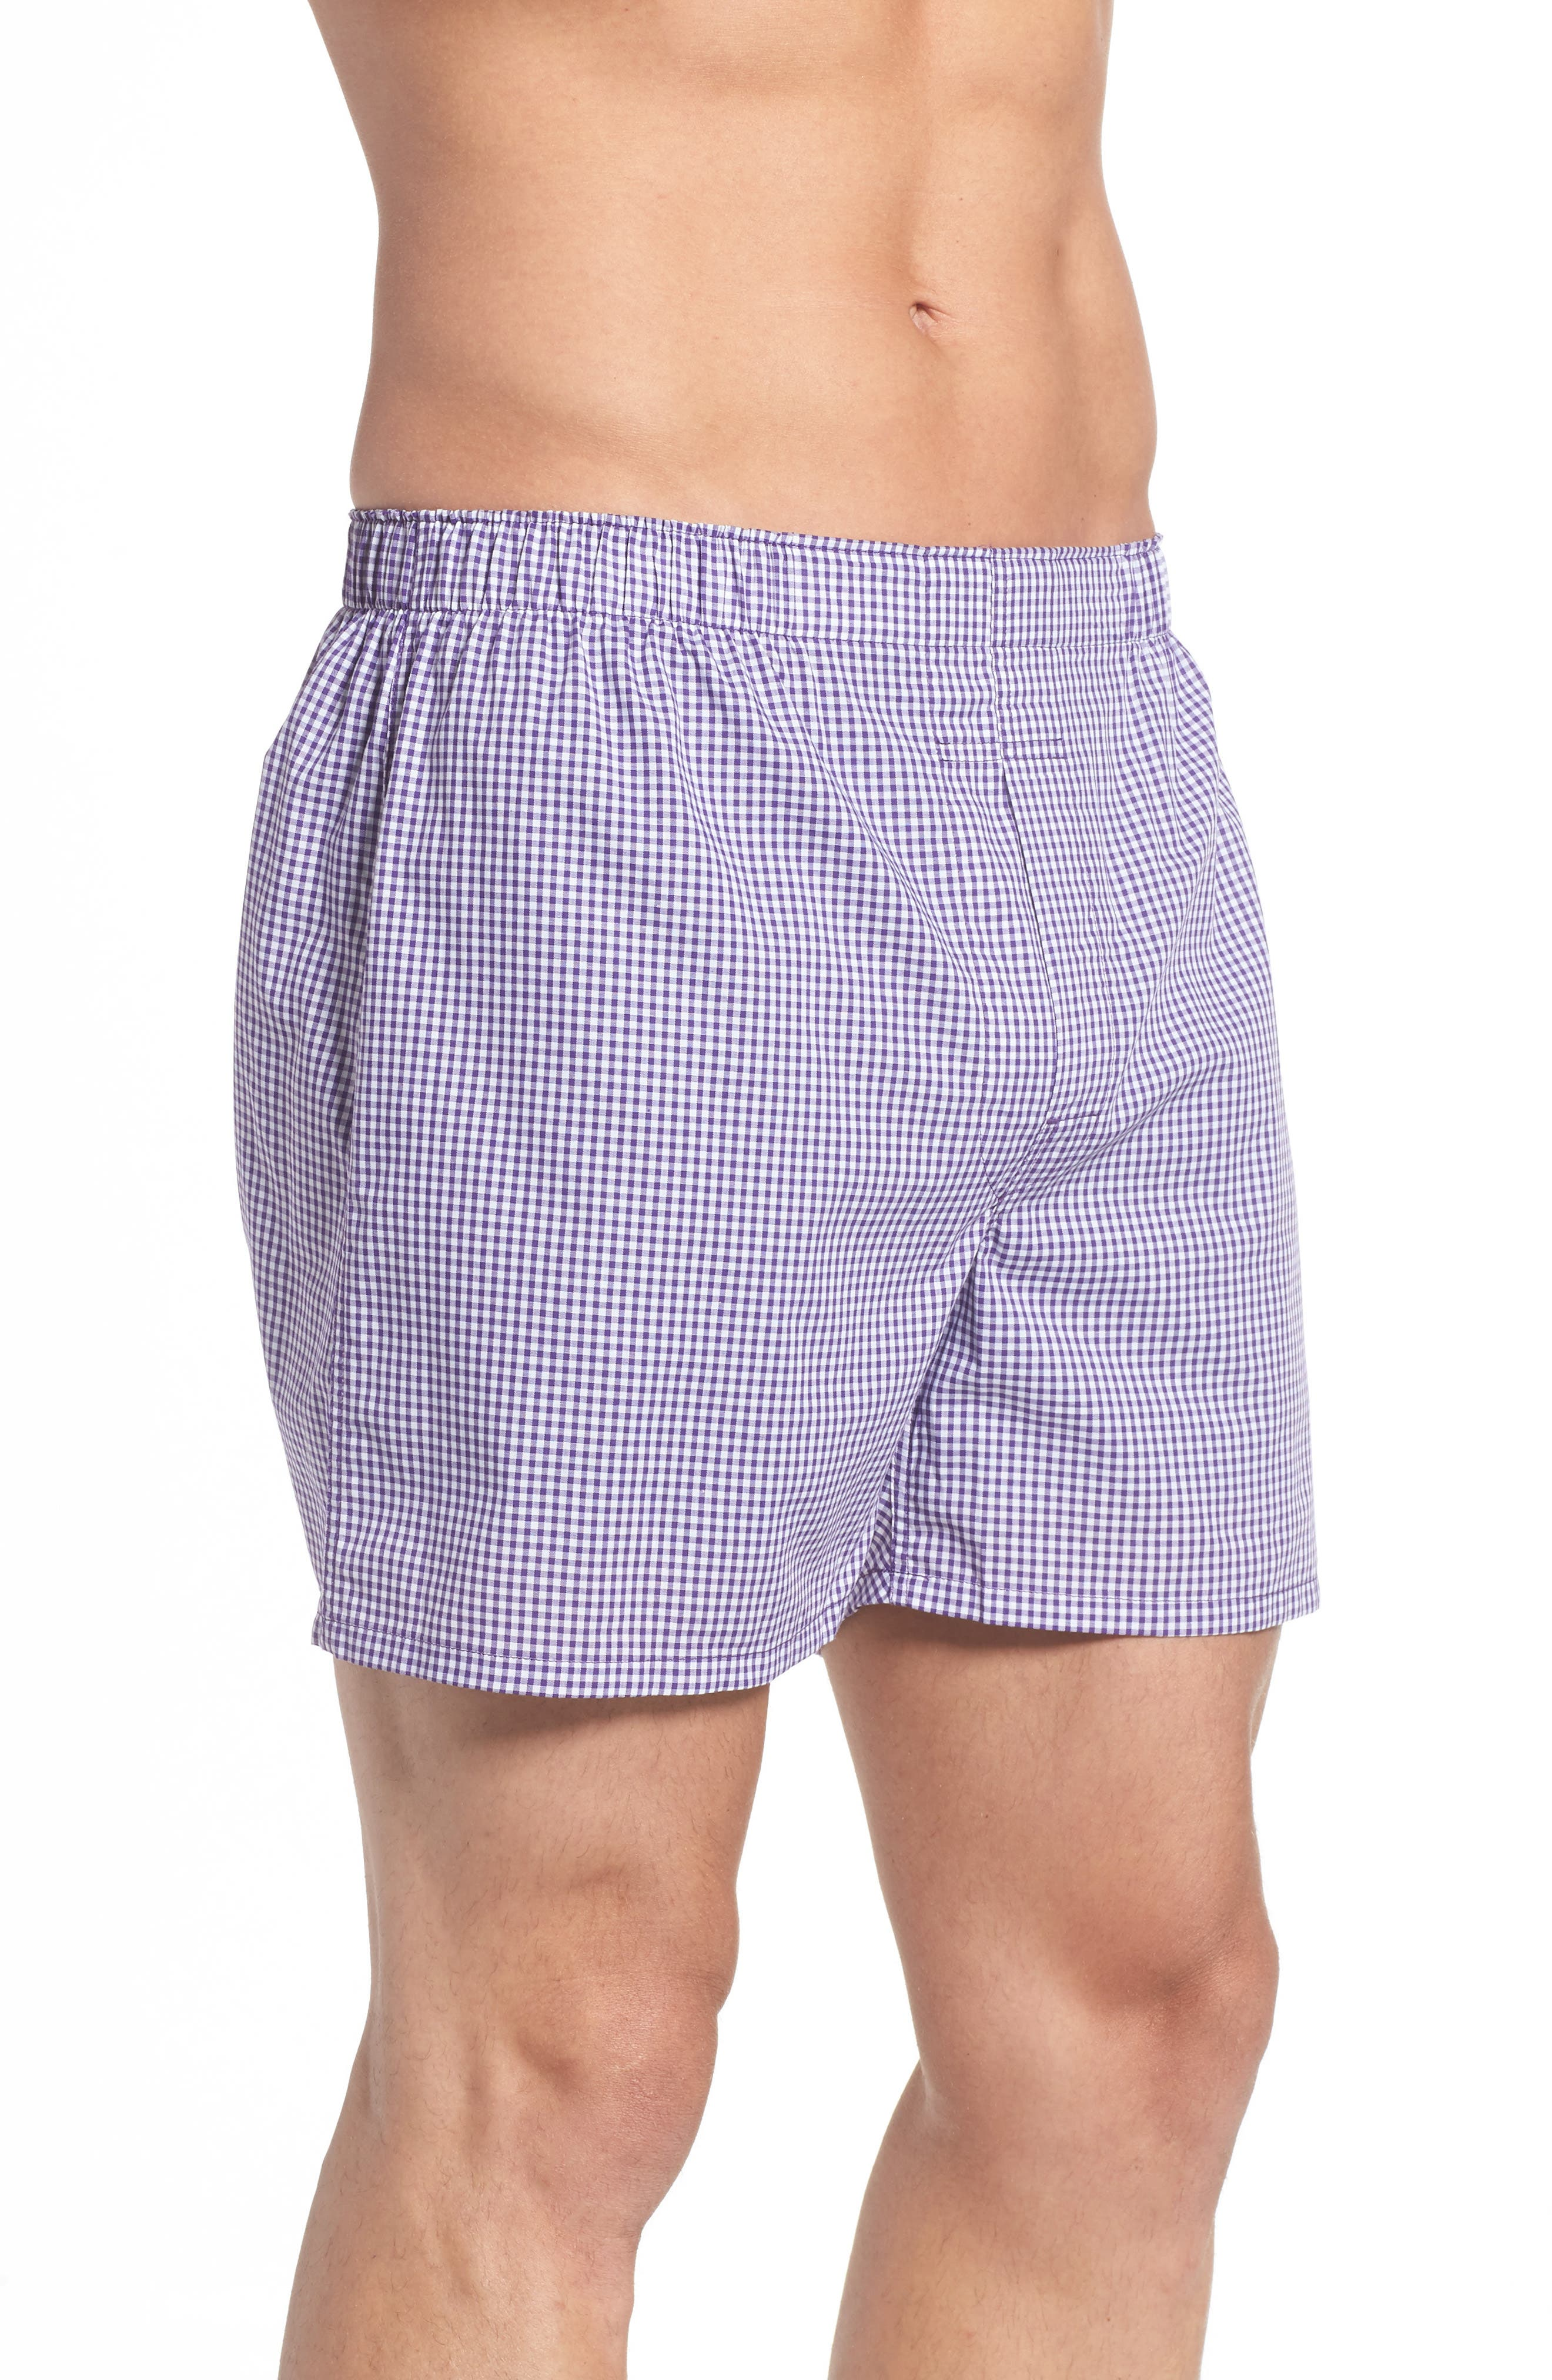 Assorted 3-Pack Woven Cotton Boxers,                             Alternate thumbnail 21, color,